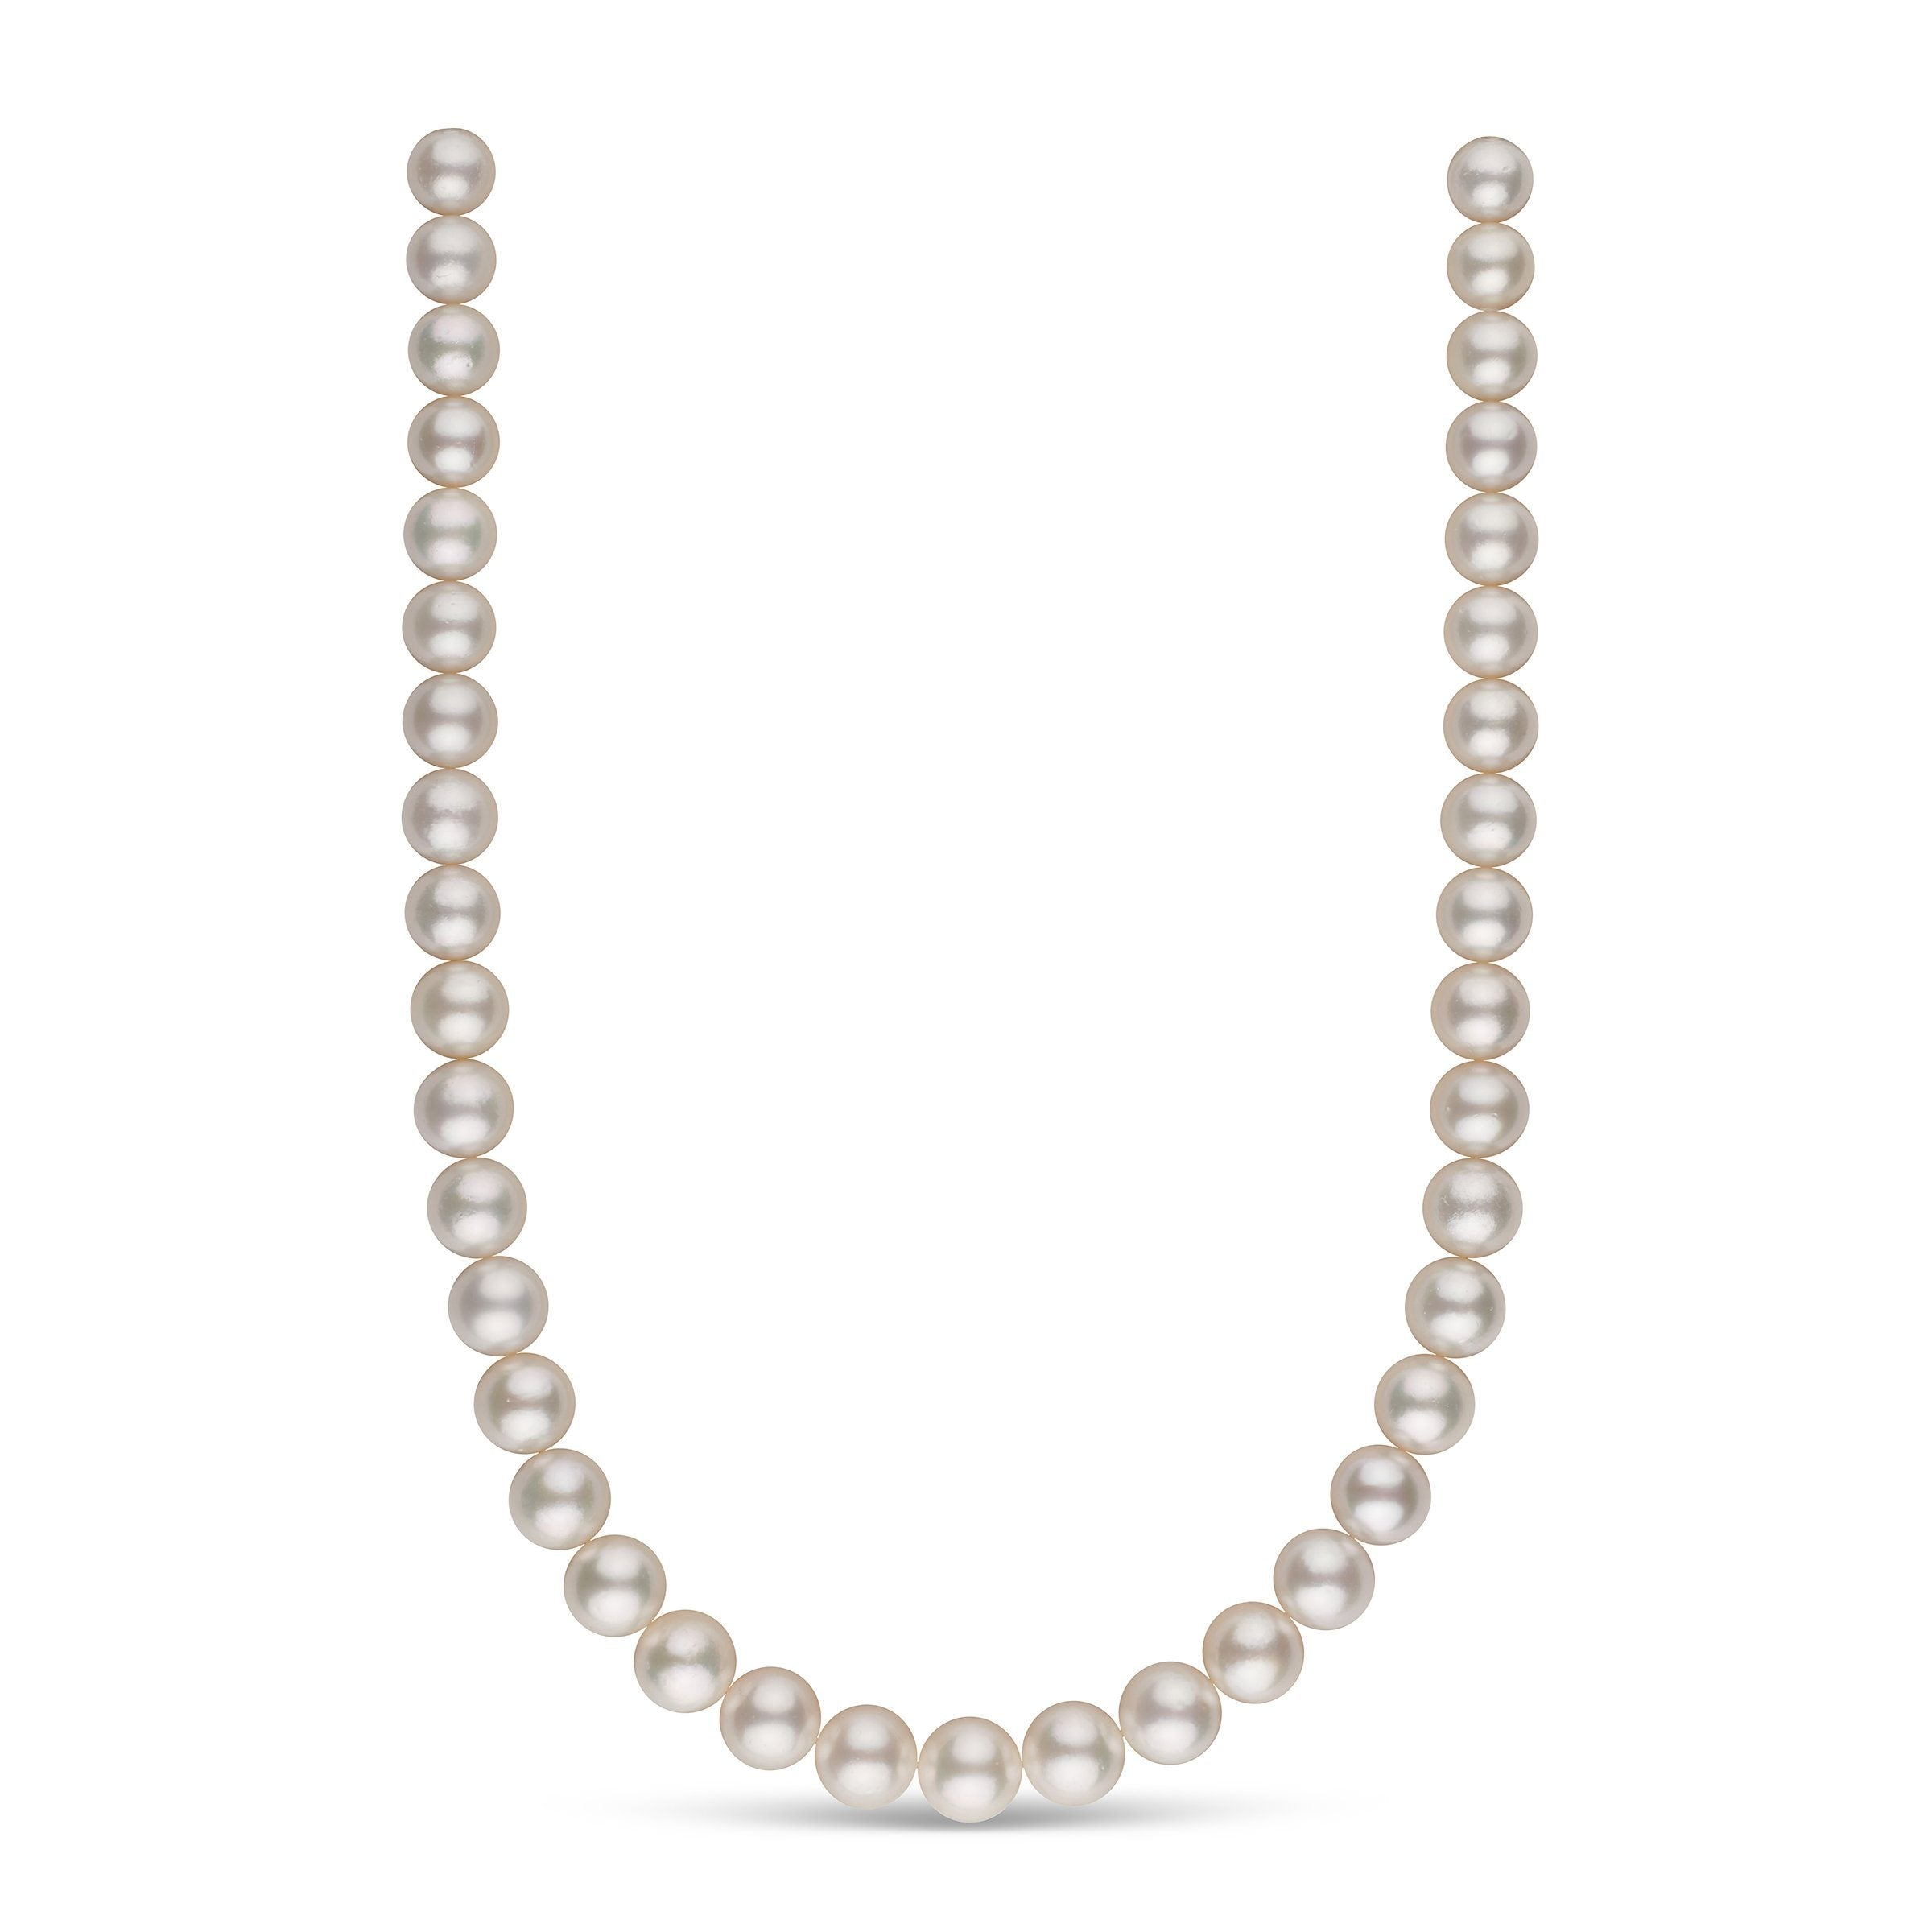 10.0-11.9 mm AA White South Sea Round Pearl Necklace